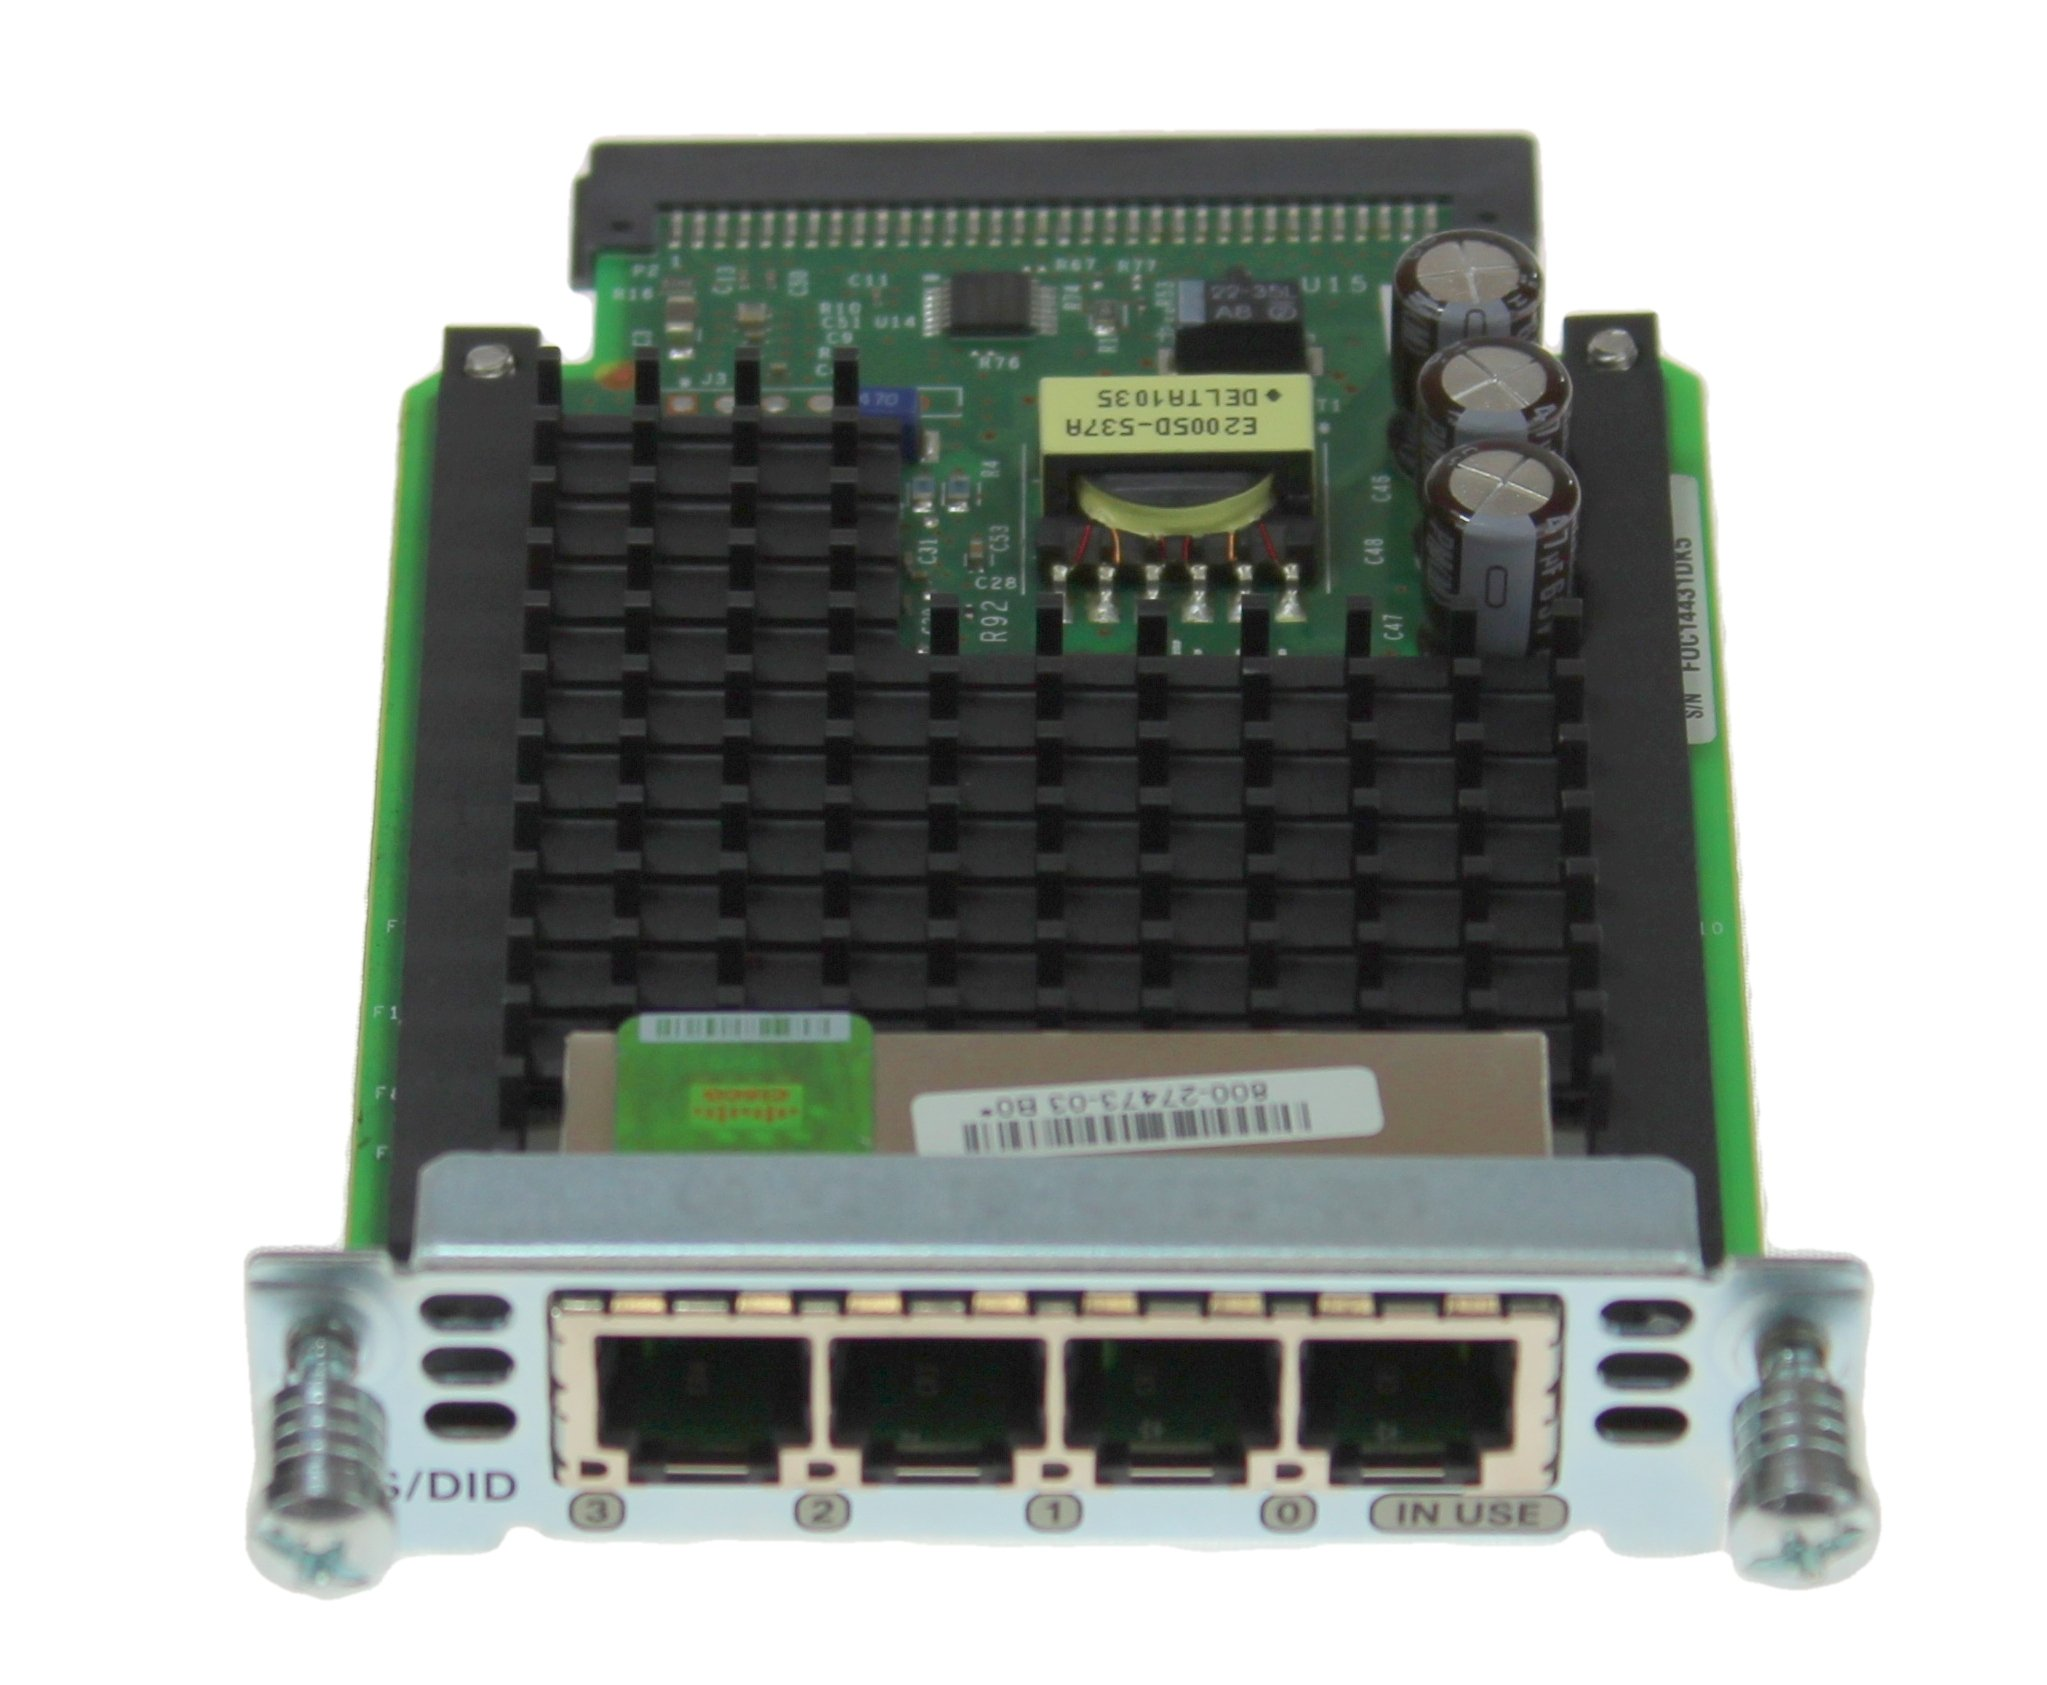 CISCO VIC3-4FXS/DID Four-Port Voice Interface Card - FXS and DID